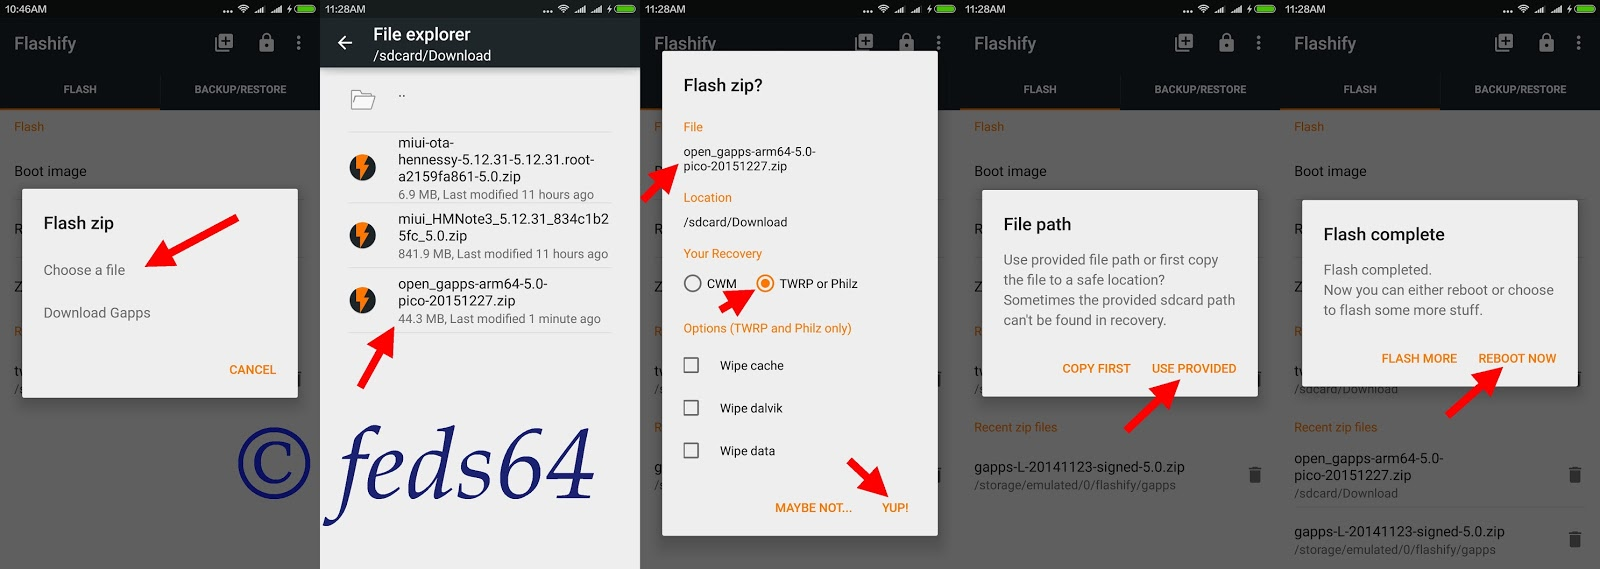 how to stop download in chrome in redmi note 3